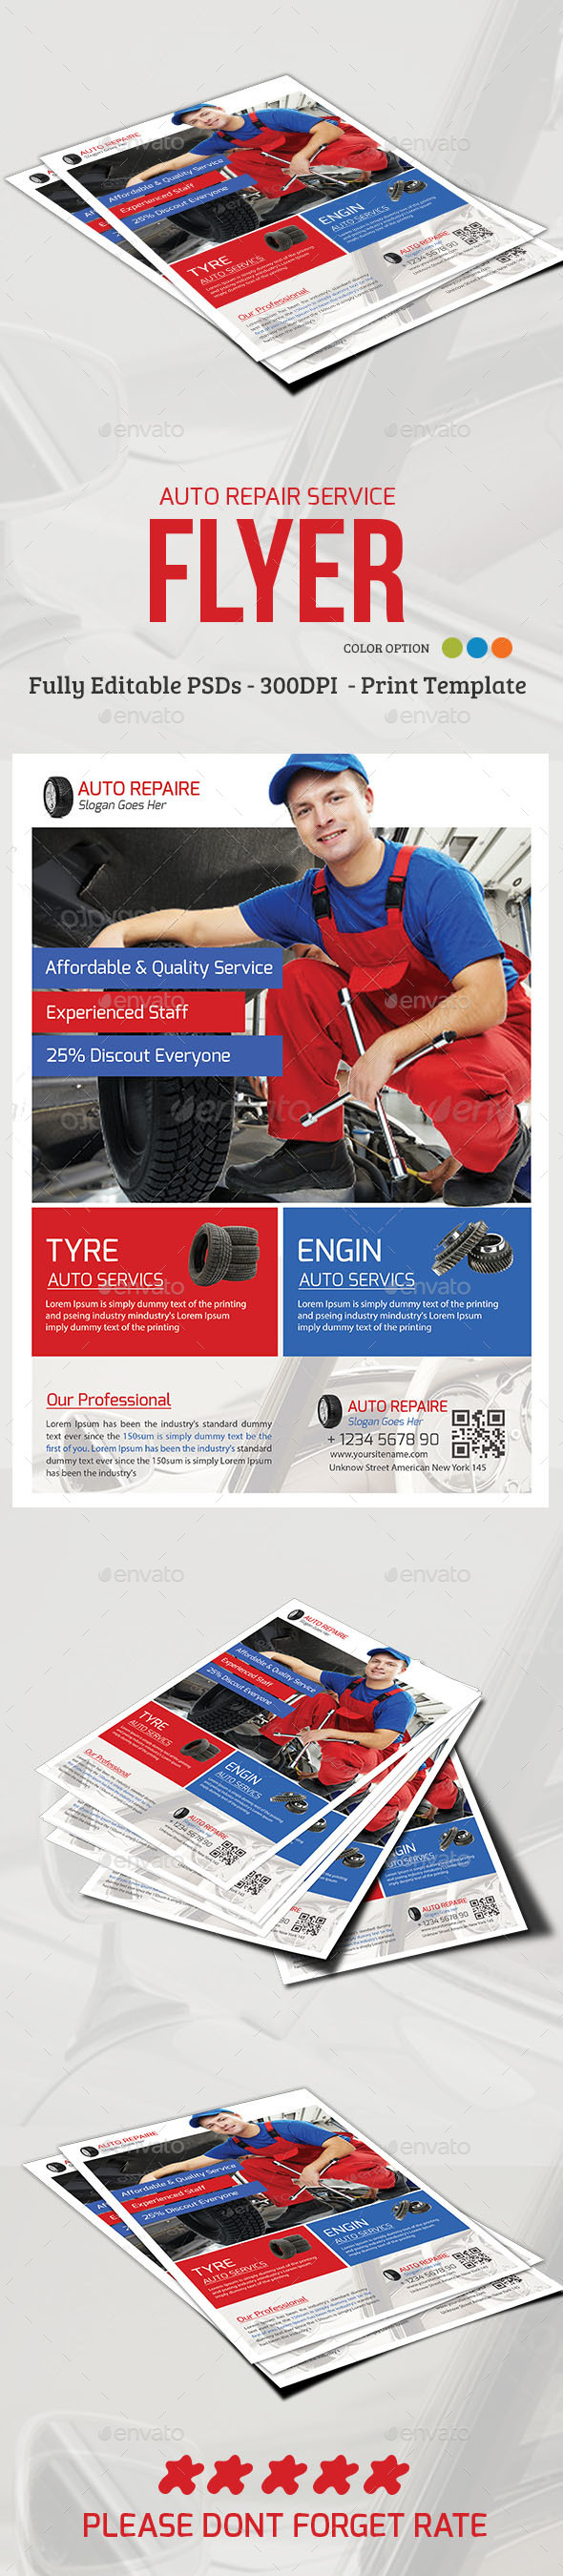 Auto Repair Service Flyer - Commerce Flyers